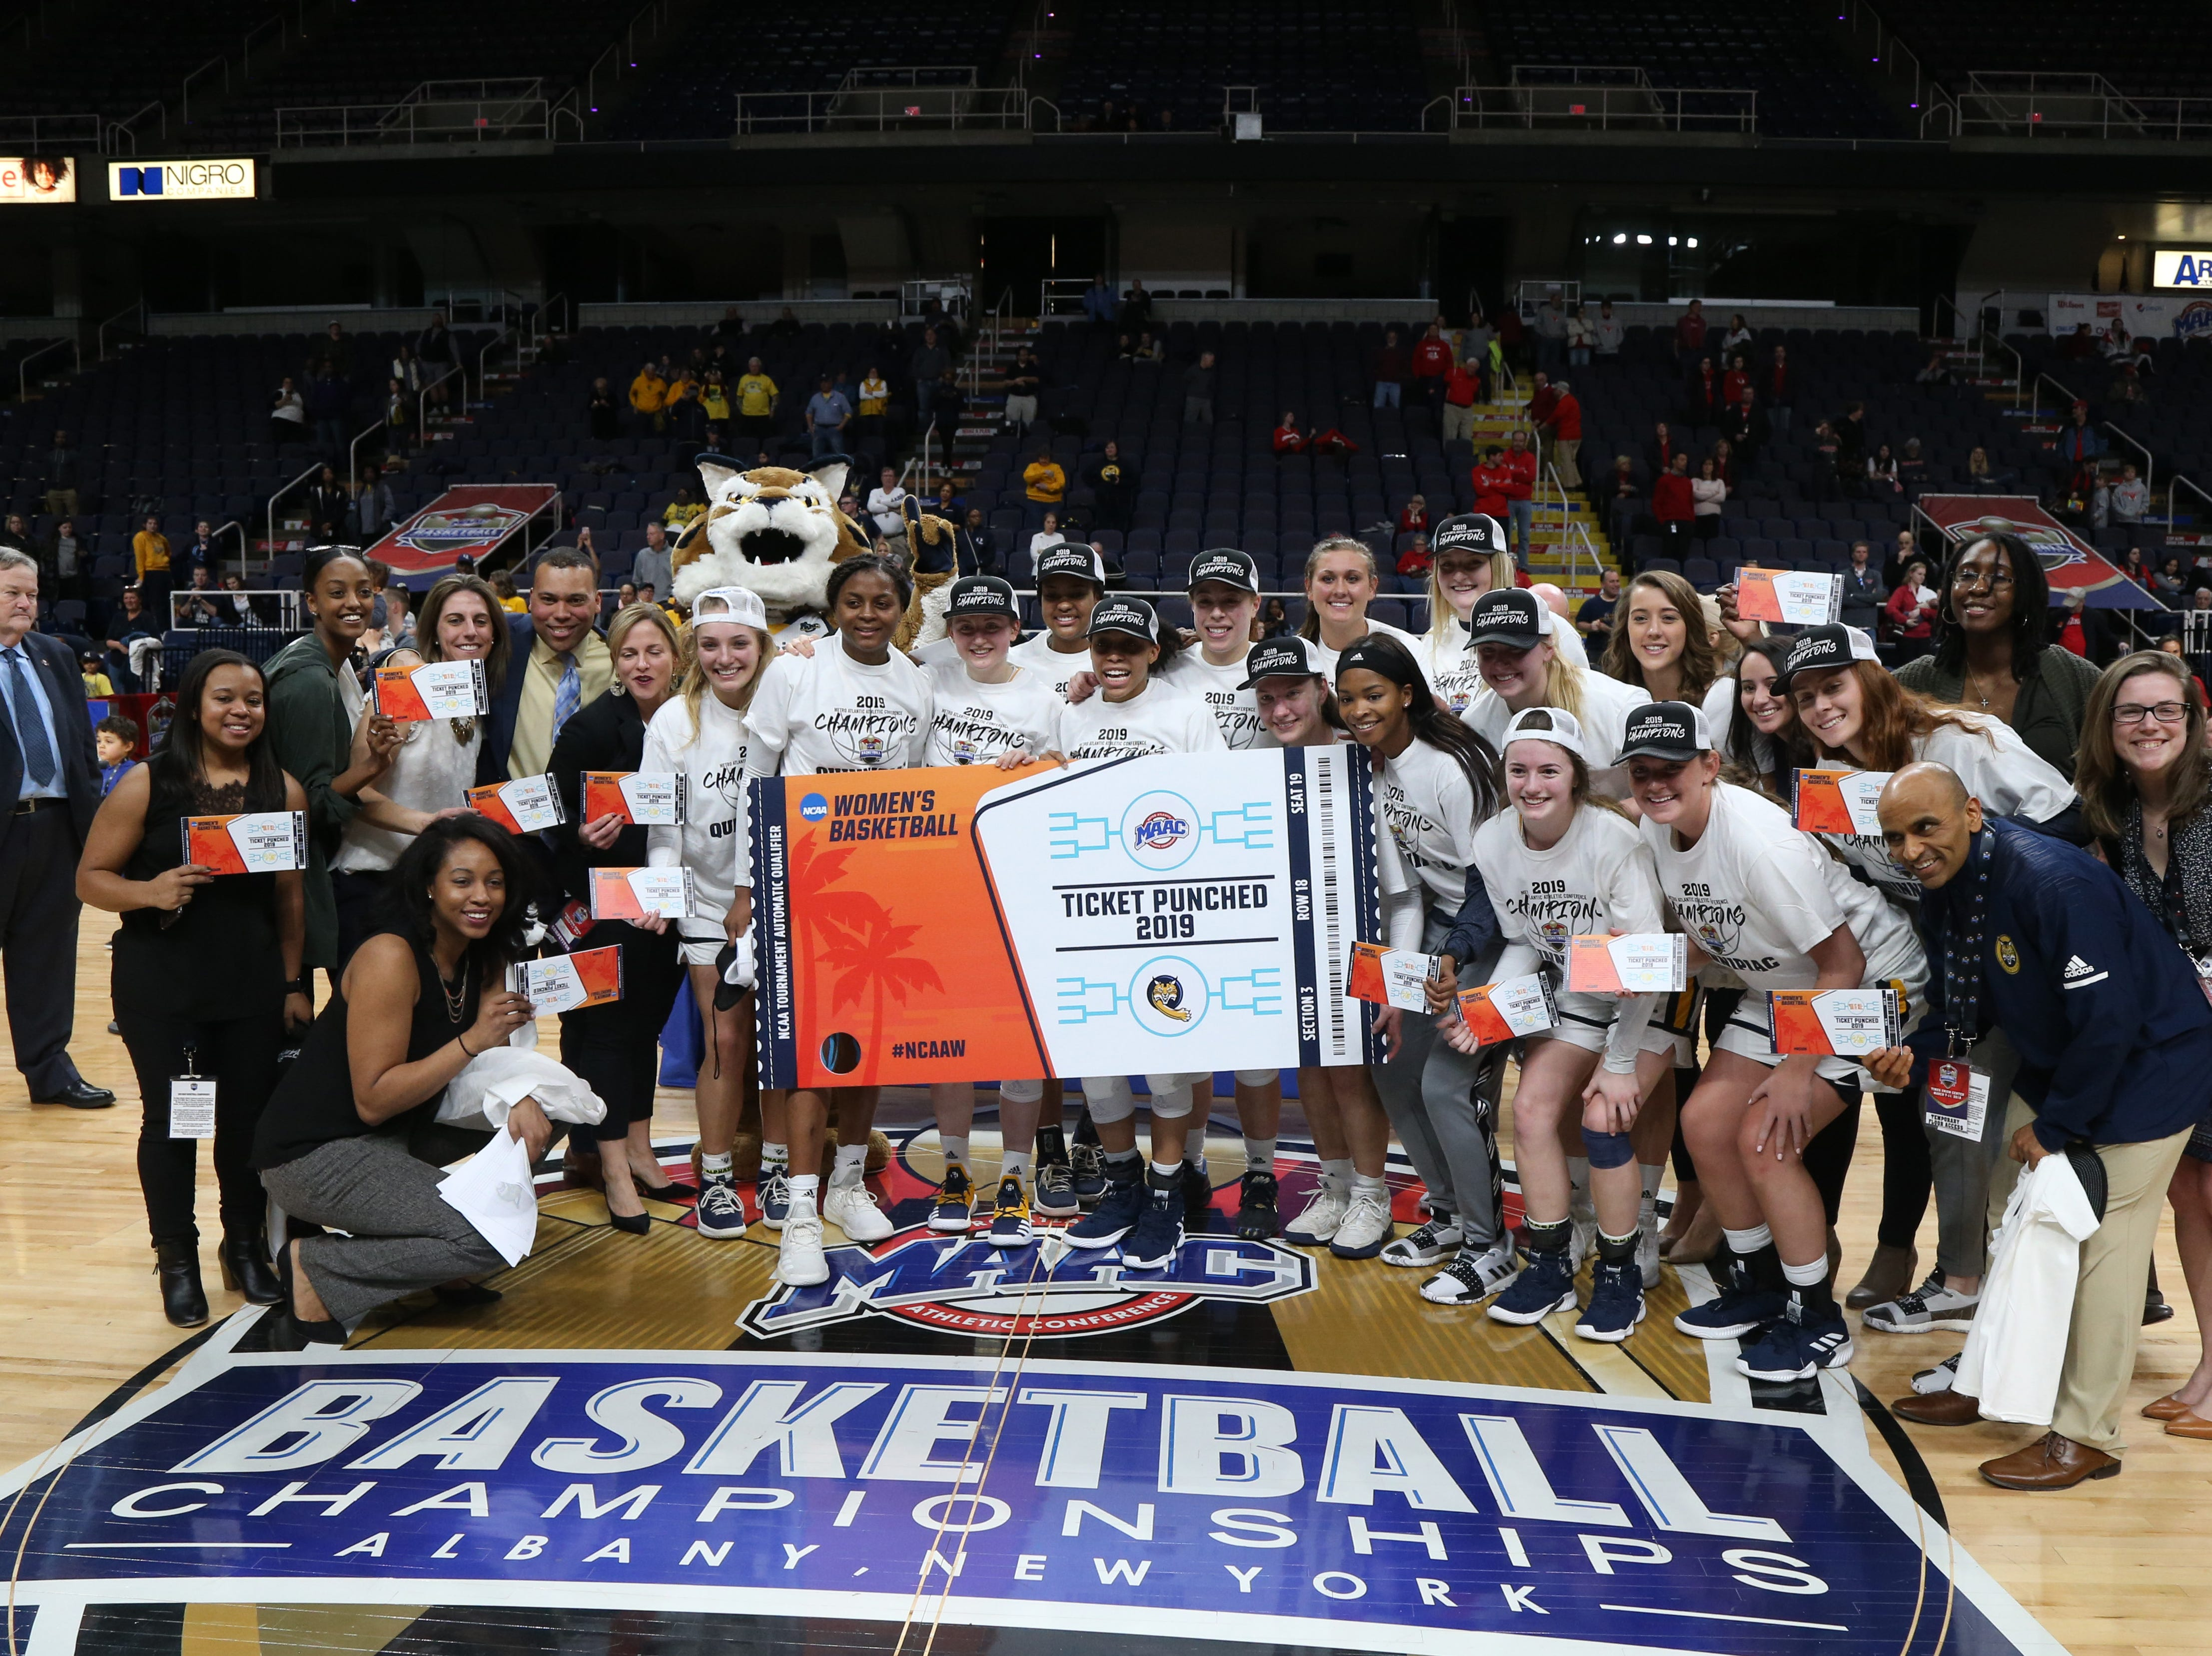 Quinnipiac women's basketball team after defeating Marist 81/51 in the MAAC championship at the Times Union Center in Albany on March 11 2019.